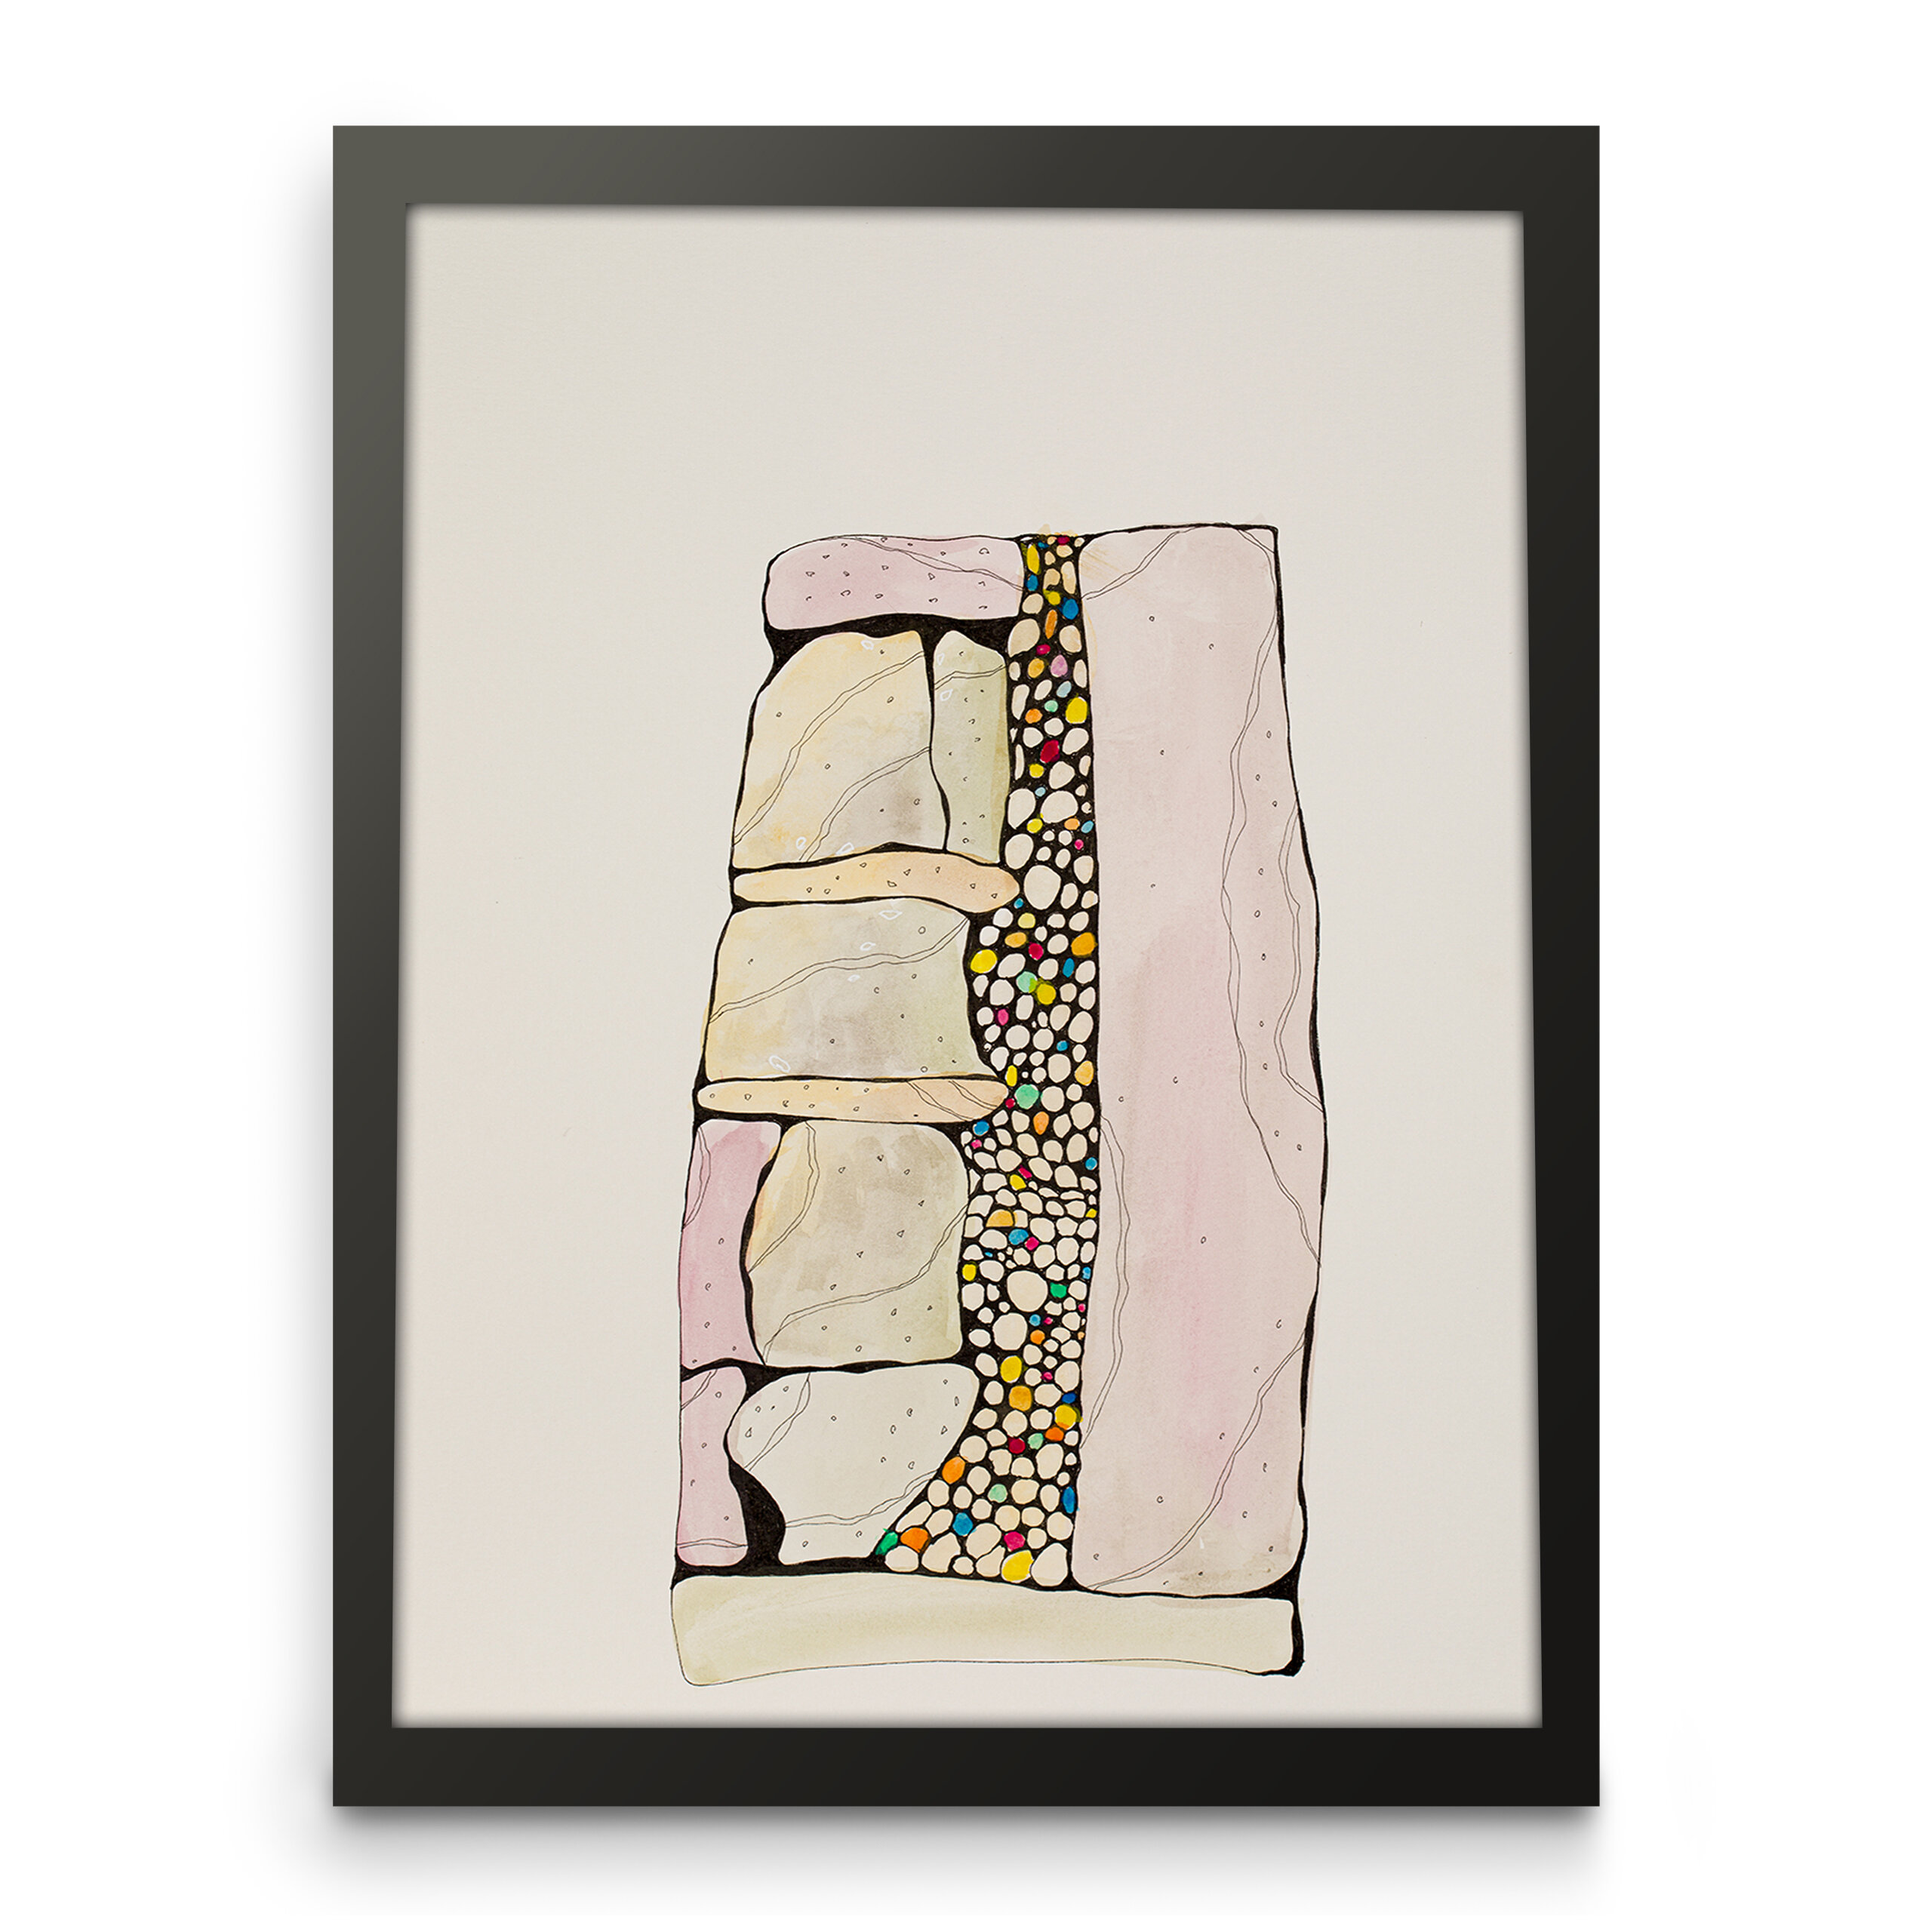 Framed art print on paper for home decor. front view